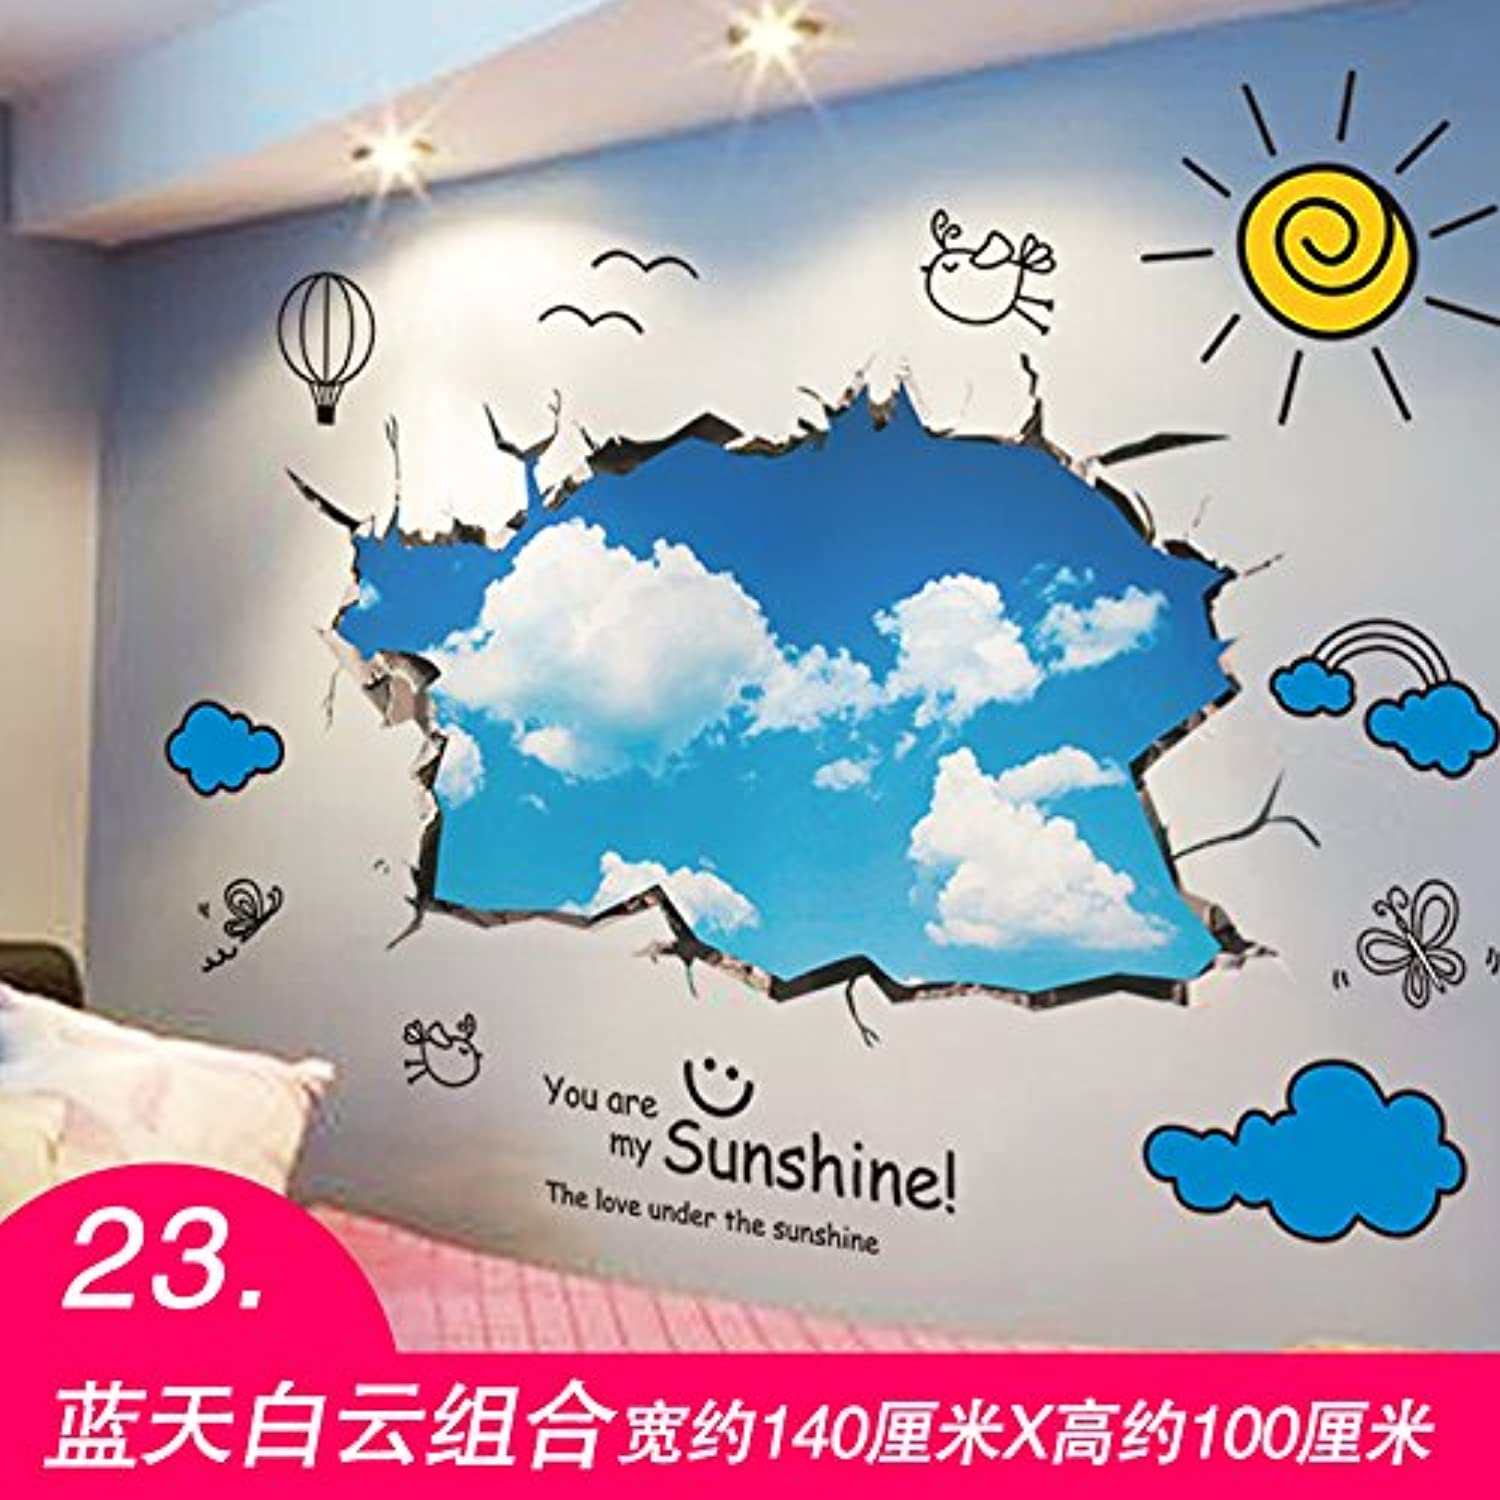 Znzbzt The Creative Wall Sticker self Adhesive Bedroom Wall Art Painting Decorative 3D Wall Paper, Lantian Baiyun, King